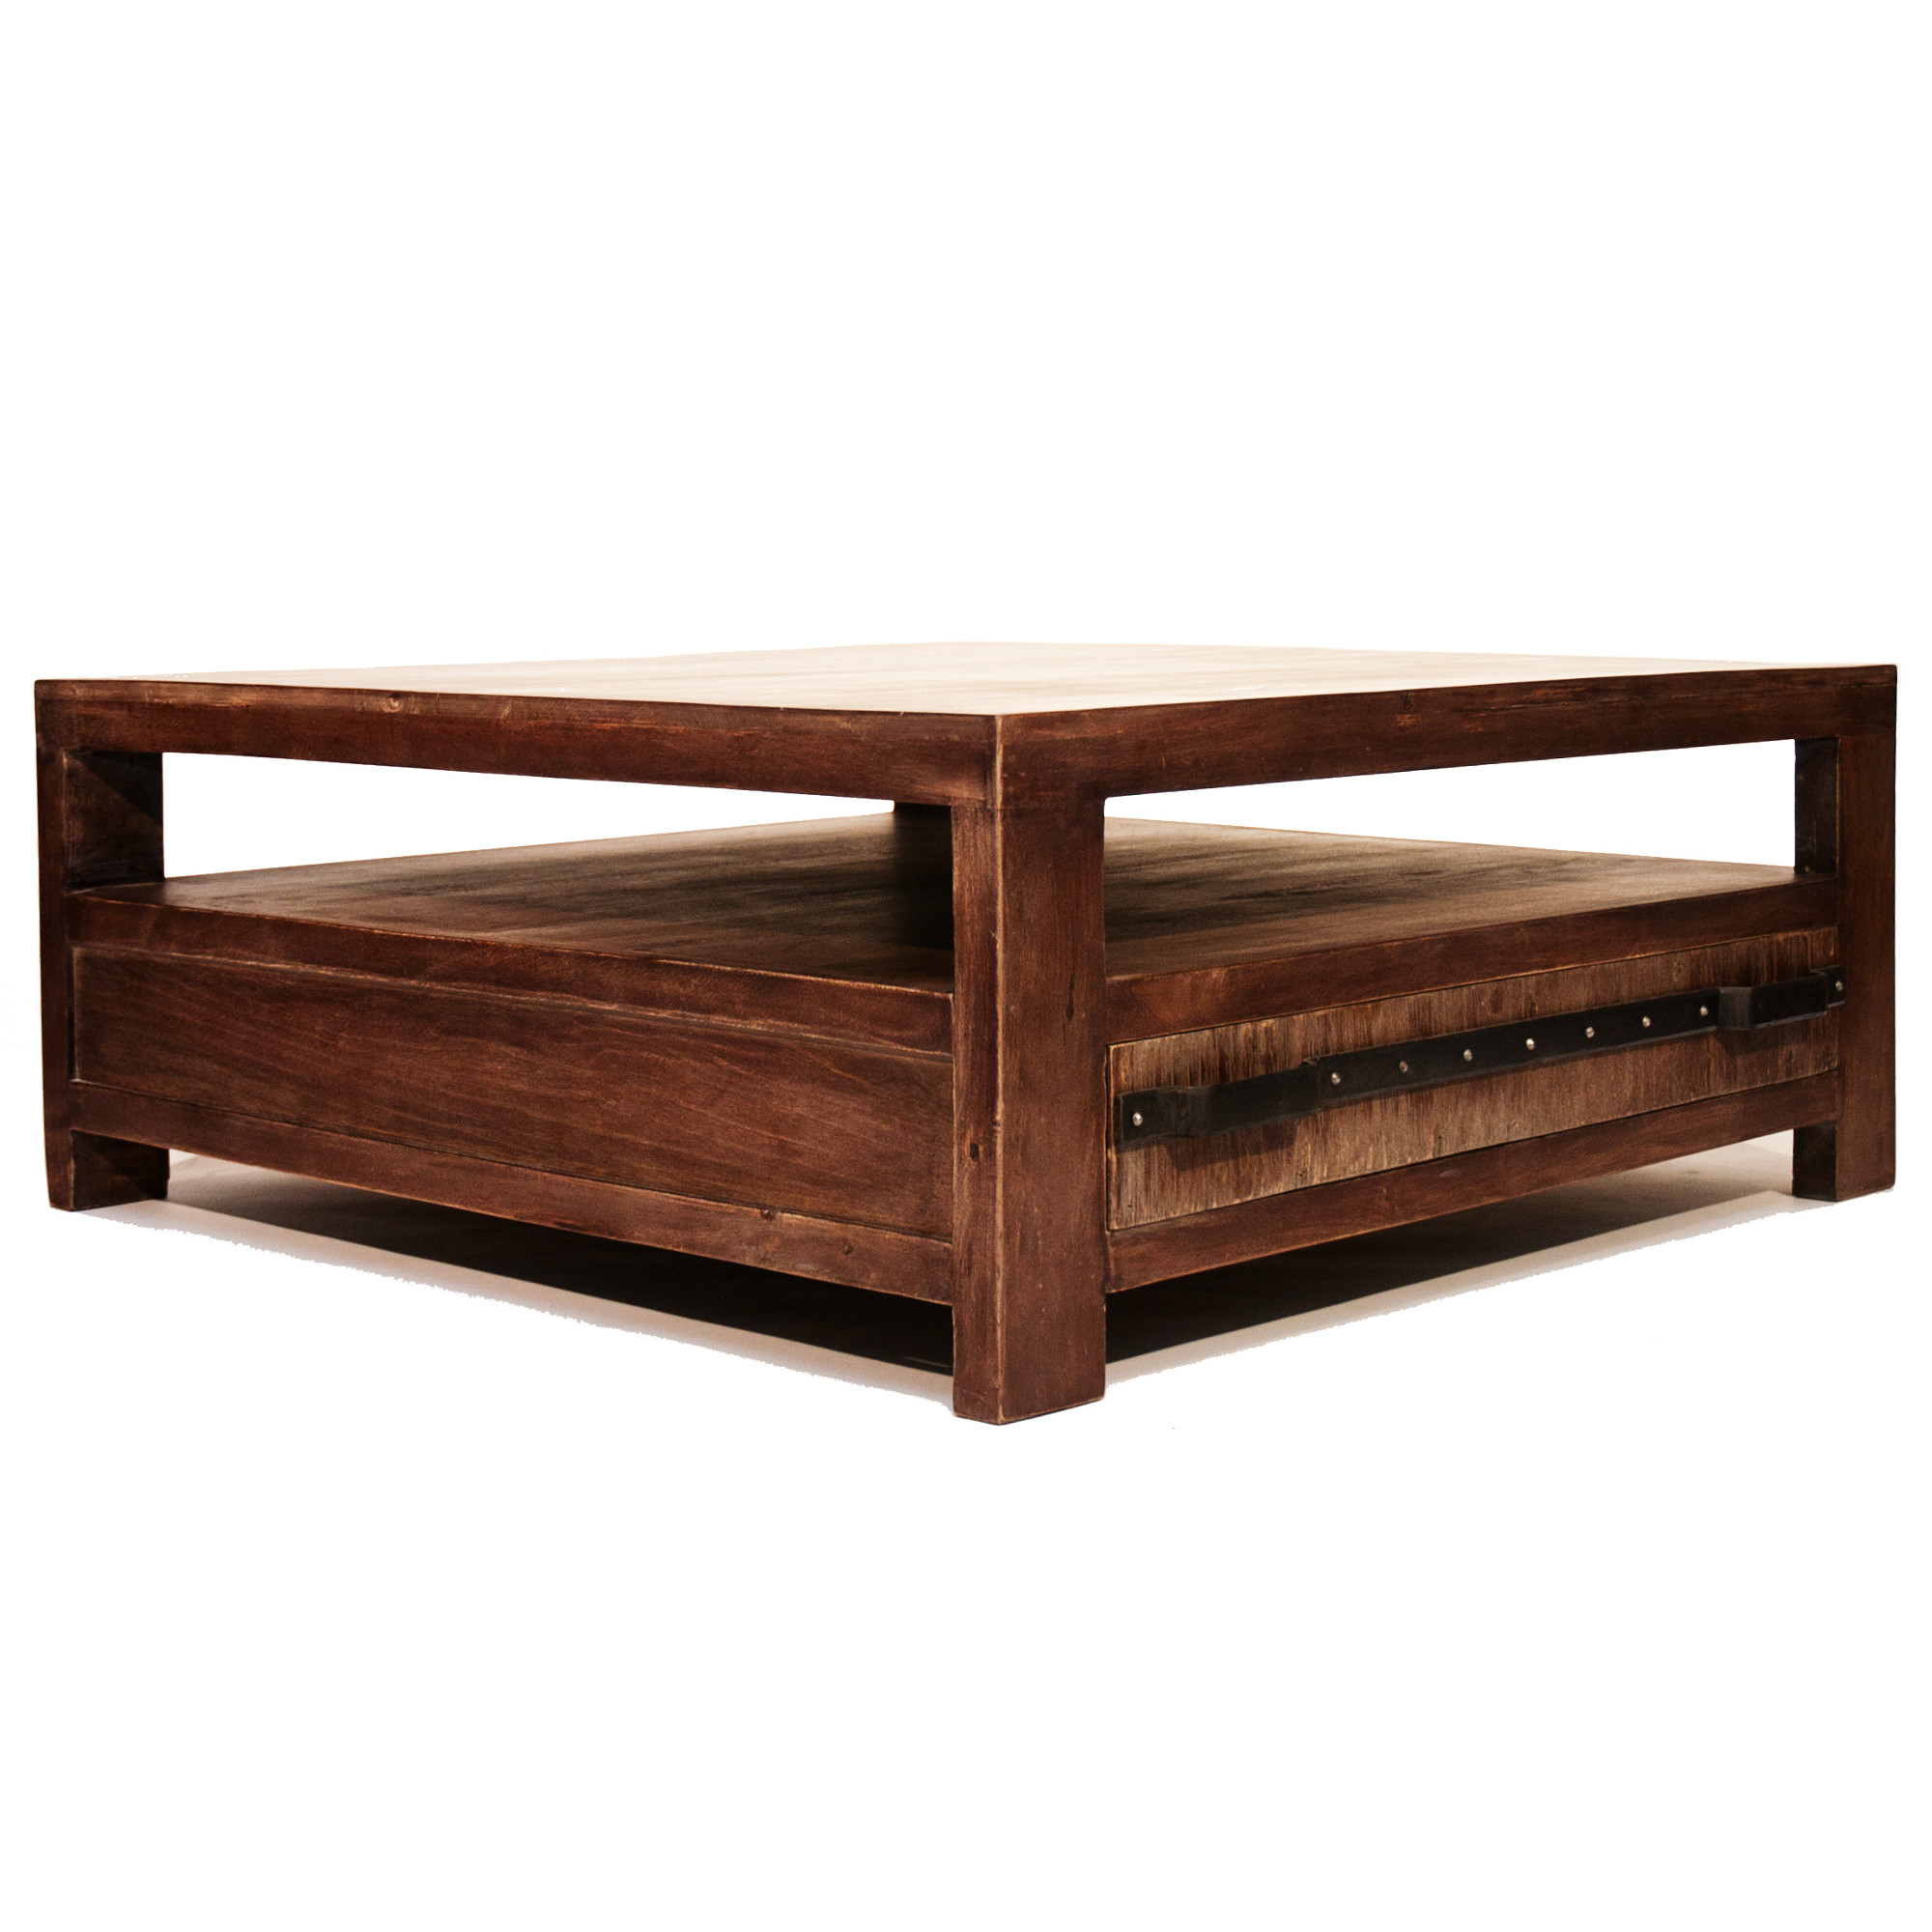 Table basse maison coloniale occasion - Table basse maison coloniale ...